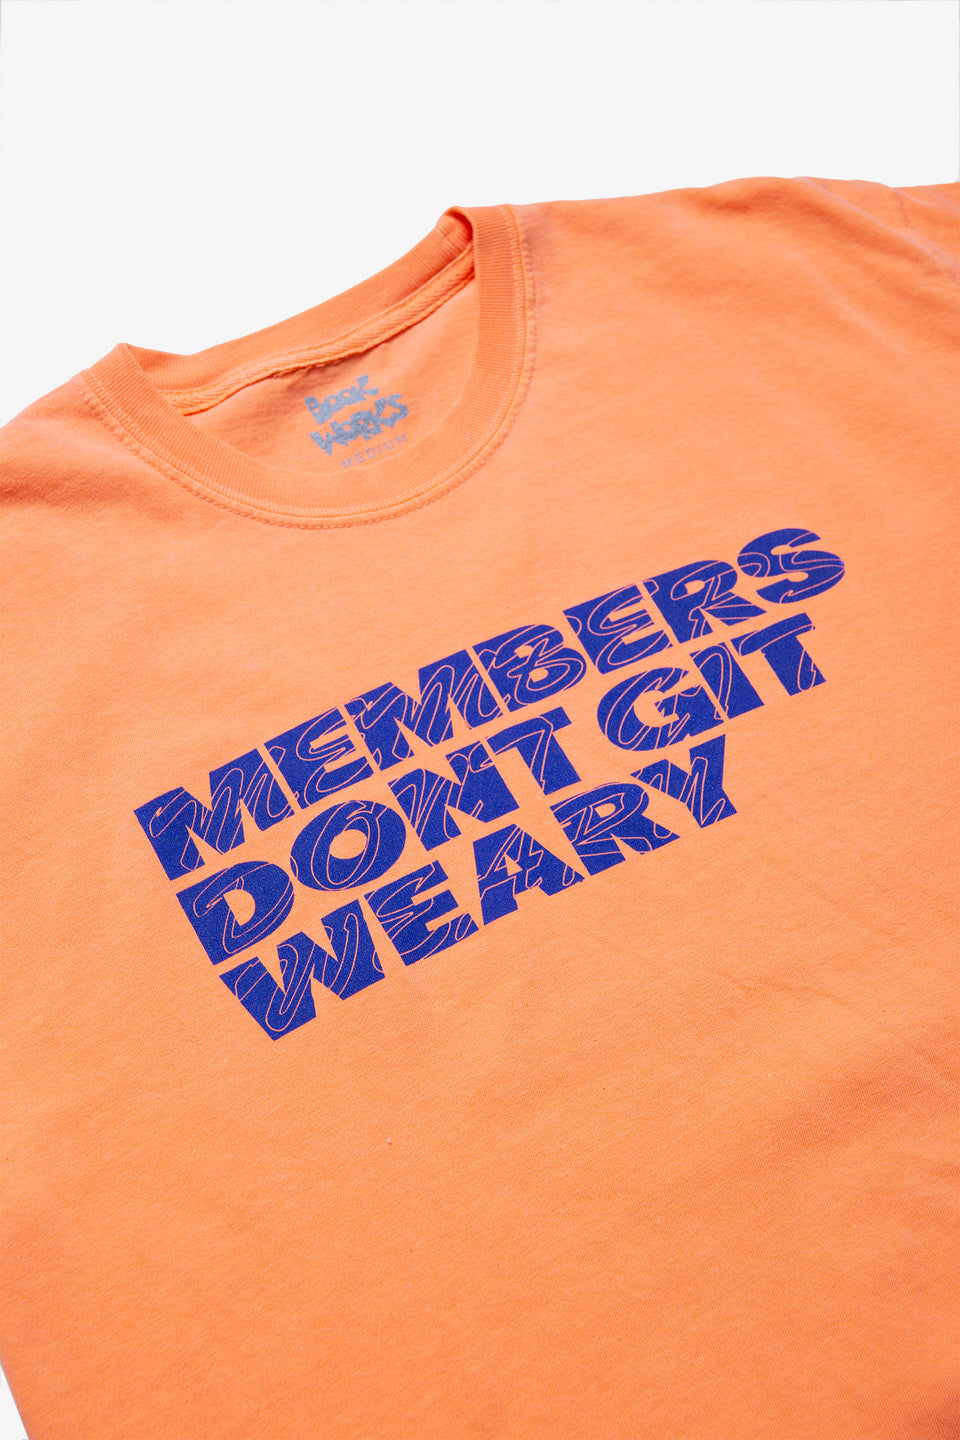 Book Works Members Don't Git Weary Tee Calculus Victoria BC Canada